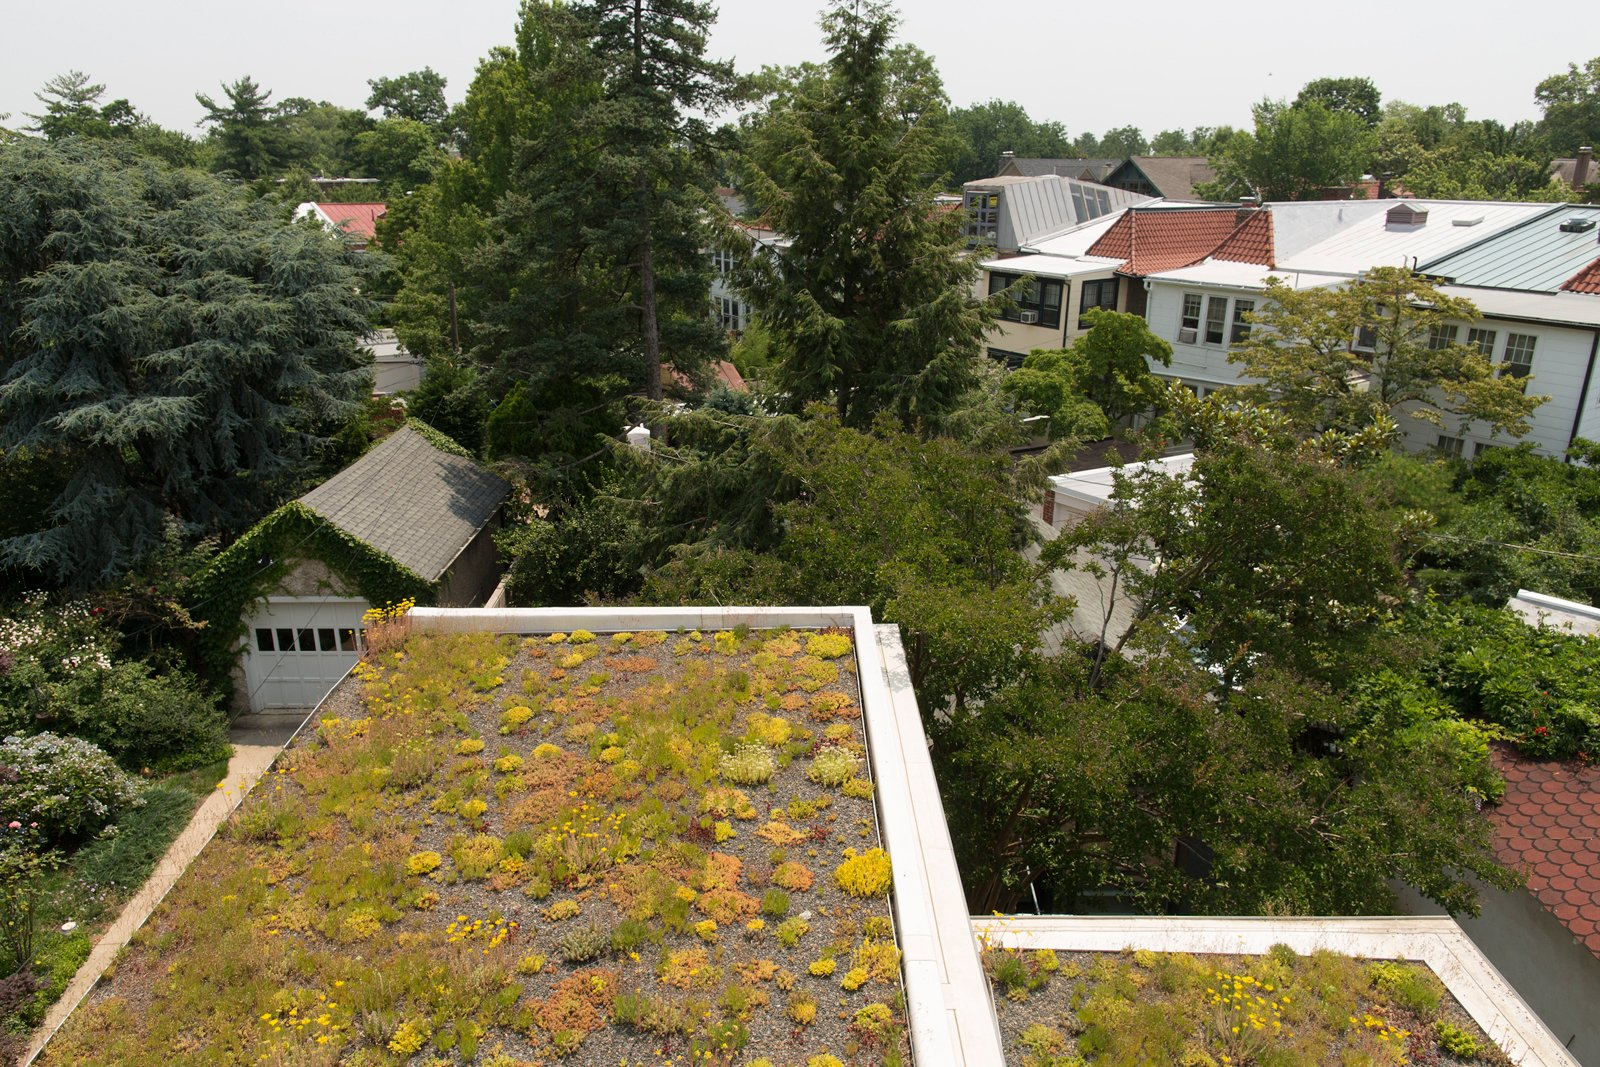 For the green roof, the family received a subsidy administered by DC Greenworks and funded by the DC Department of the Environment. The sedum plantings come from nearby Emory Knoll Farms, the only nursery in North America to focus solely on propagating plants intended for green-roof systems.  The sedum plantings come from nearby Emory Knoll Farms, the only nursery in North America to focus solely on propagating plants intended for green-roof systems.